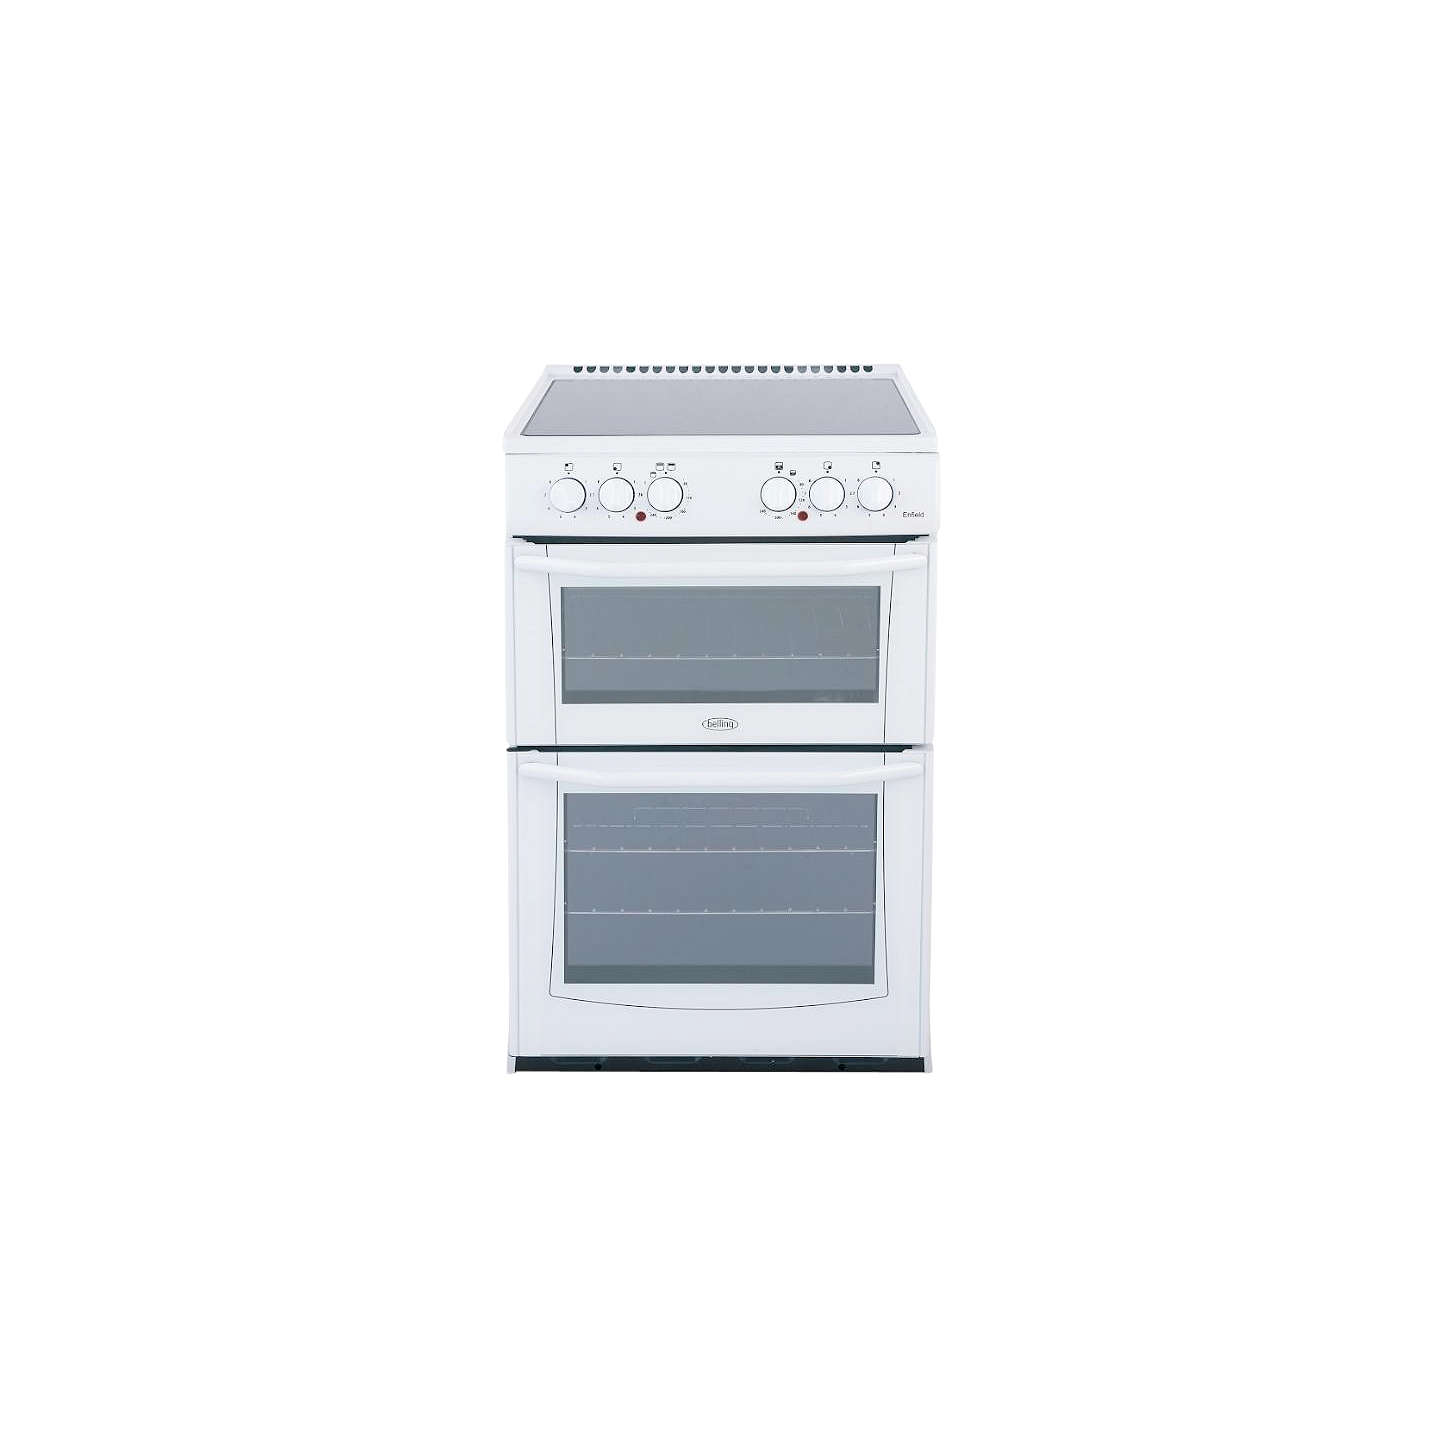 belling e552w enfield electric cooker white at john lewis. Black Bedroom Furniture Sets. Home Design Ideas